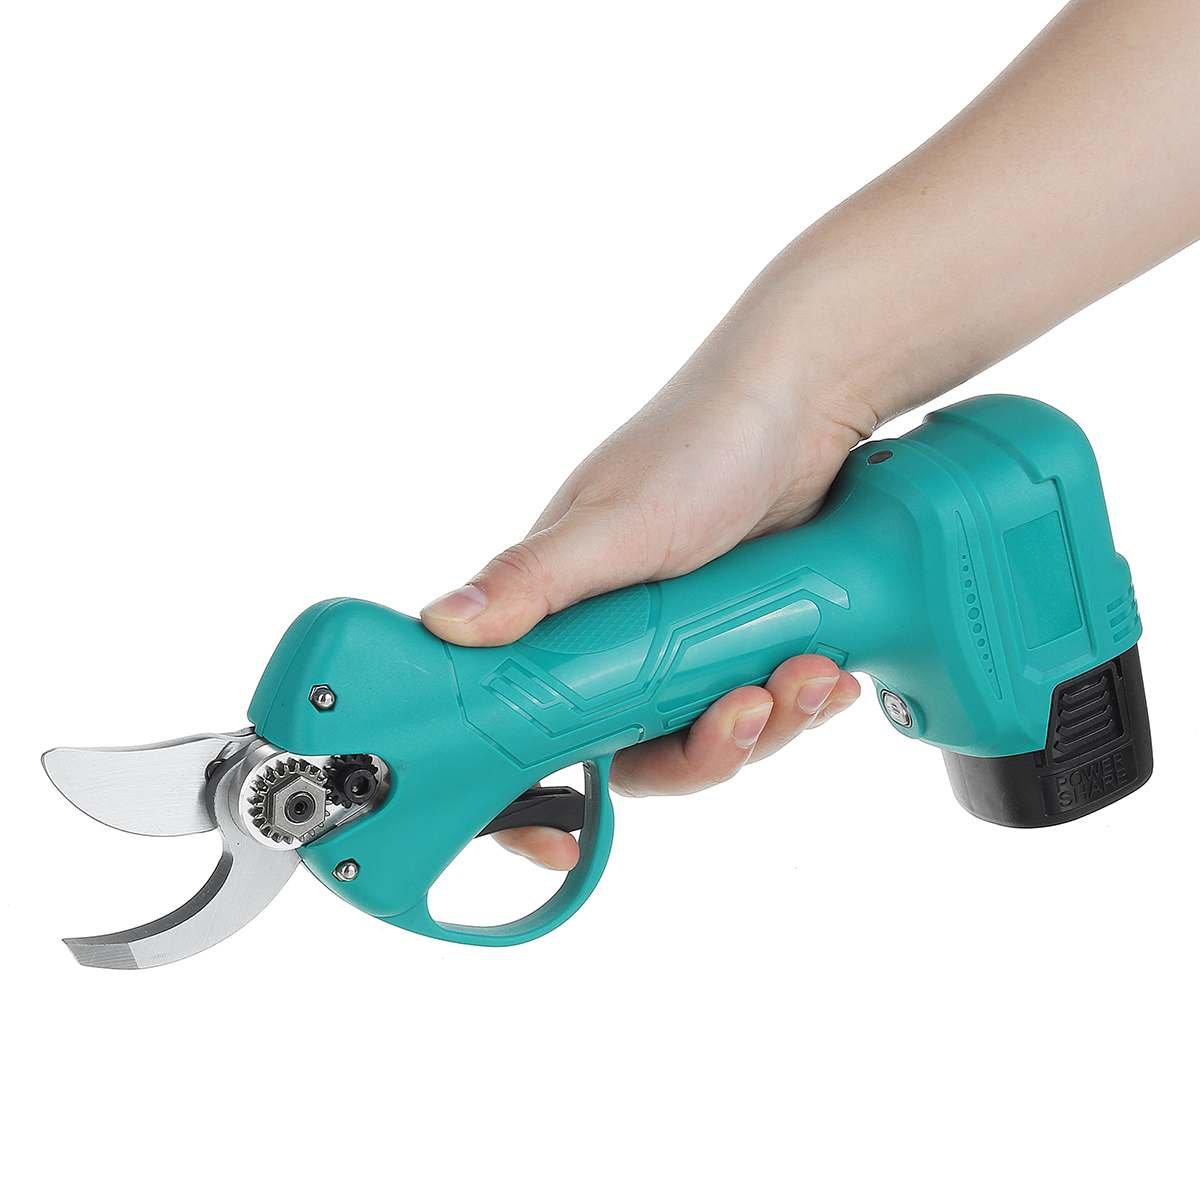 Tools : Electric Pruning Shears Garden Trimmer Lithium Battery Powered Hedge Cutter Electric Scissors Rechargeable Handheld Pruner Tools